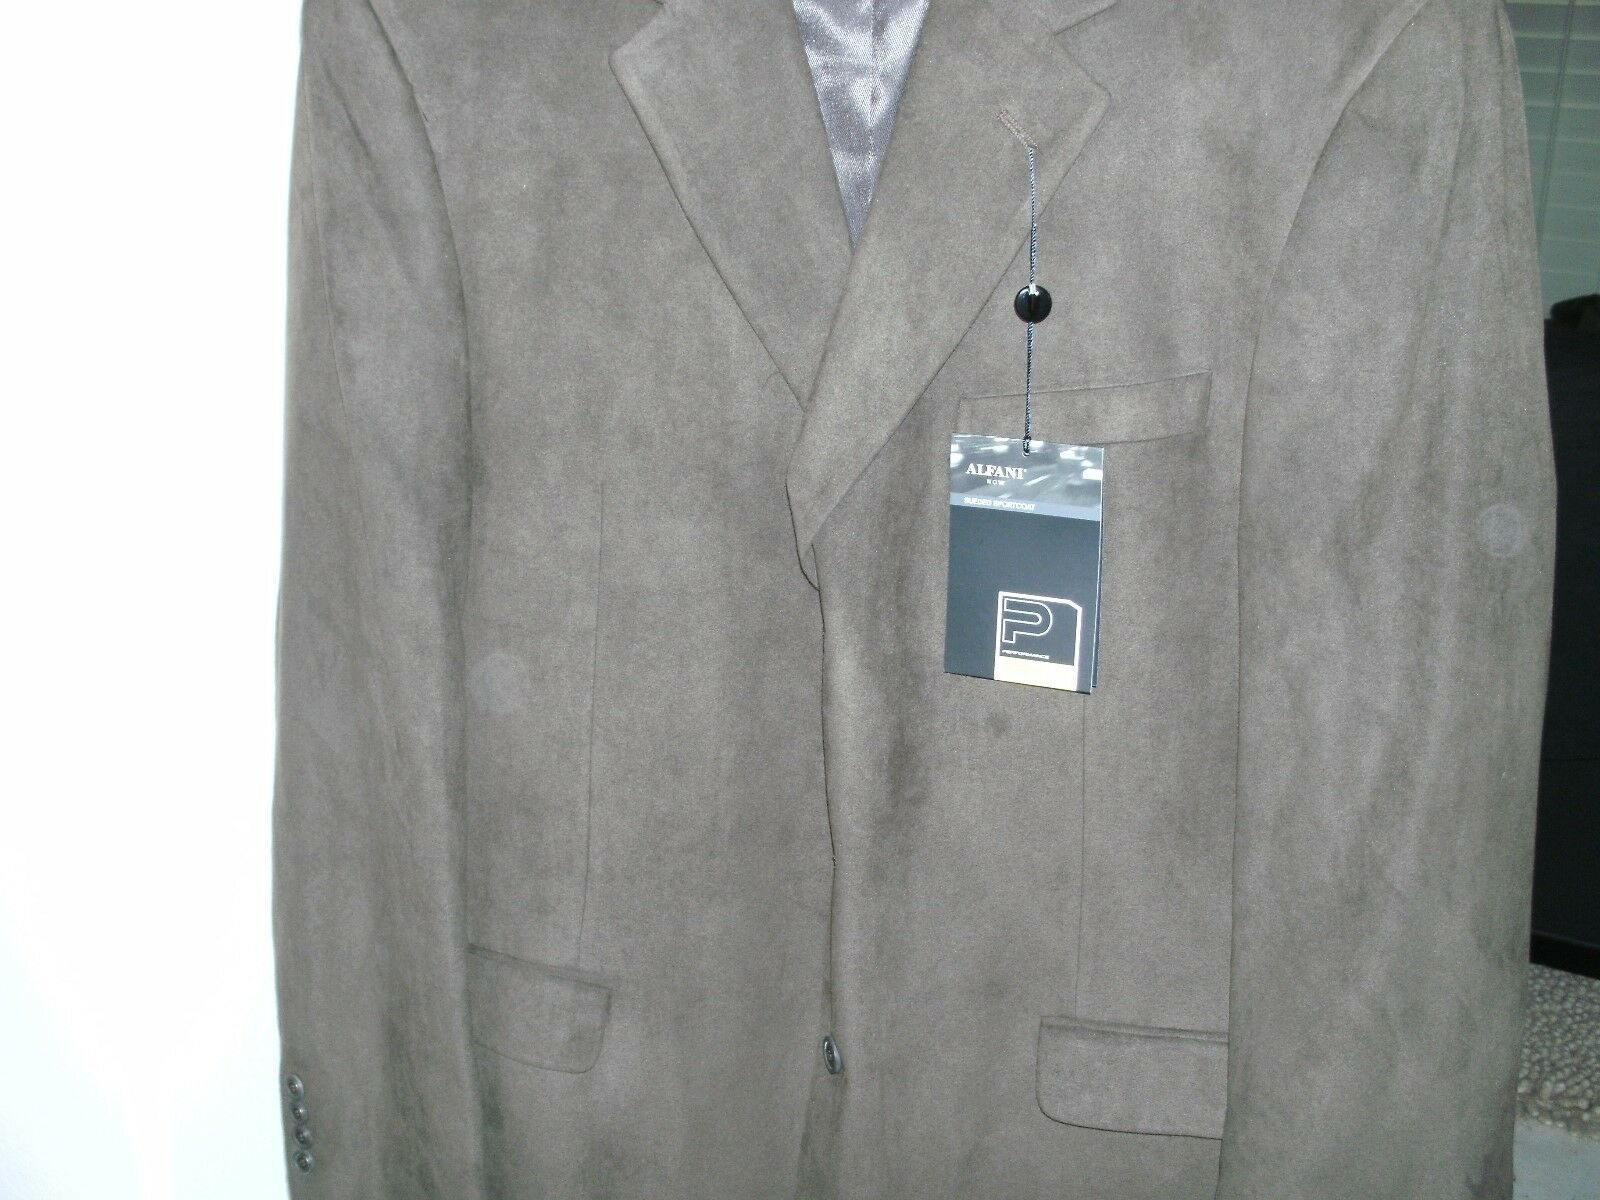 ALFANI braun SPORTCOAT SUEDED 44L 44L 44L LONG NEW WITH TAGS 250 SEE TAG PIC FOR COLOR 740a75